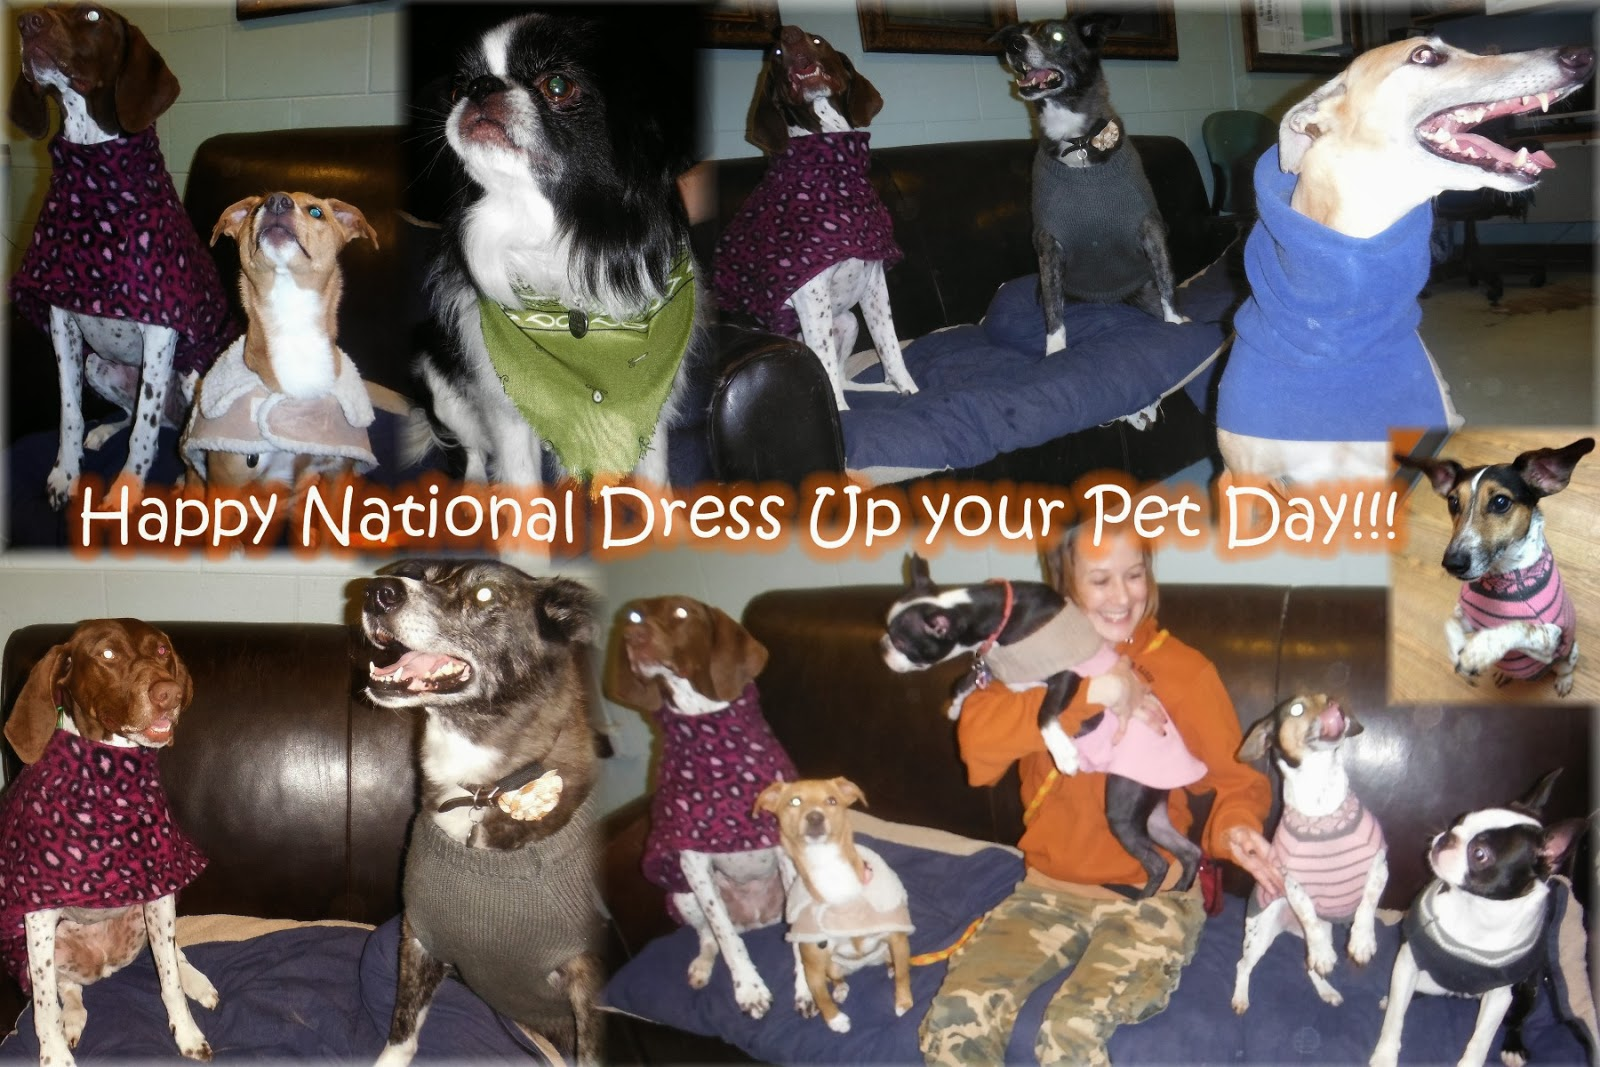 Dress up your pet day - National Dress Up Your Pet Day